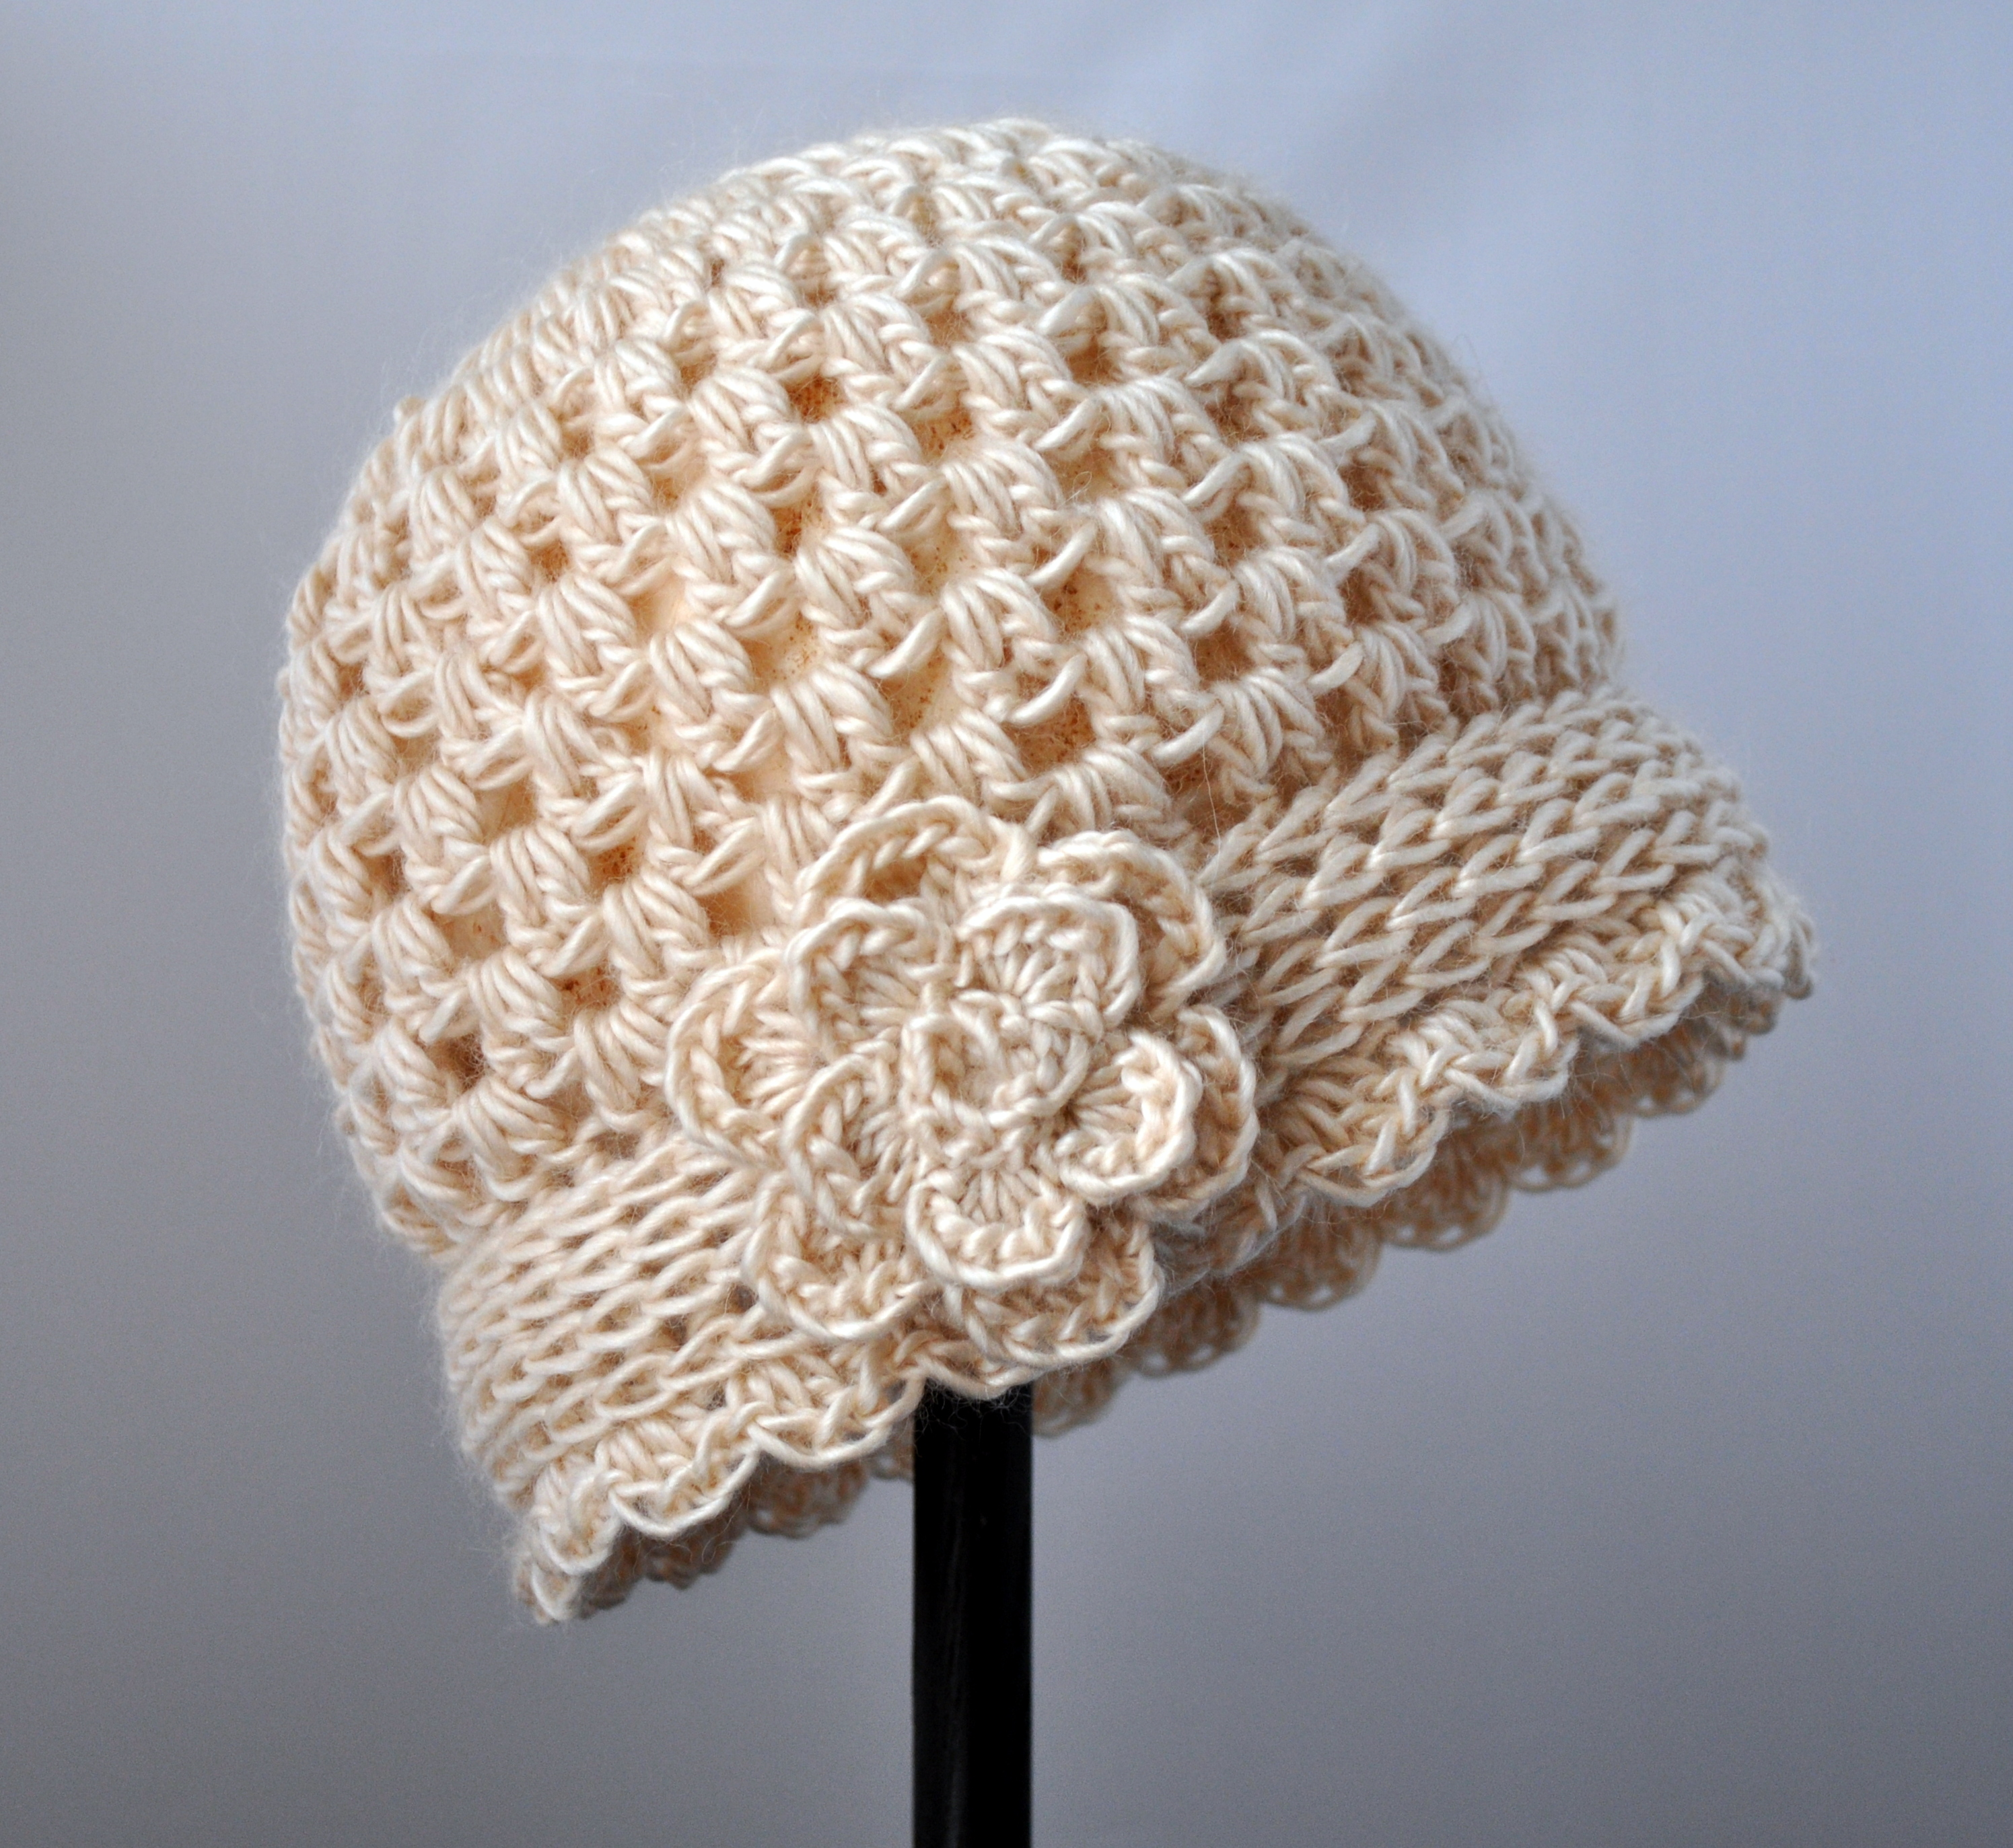 To Crochet : Crochet Patterns Classy Crochet